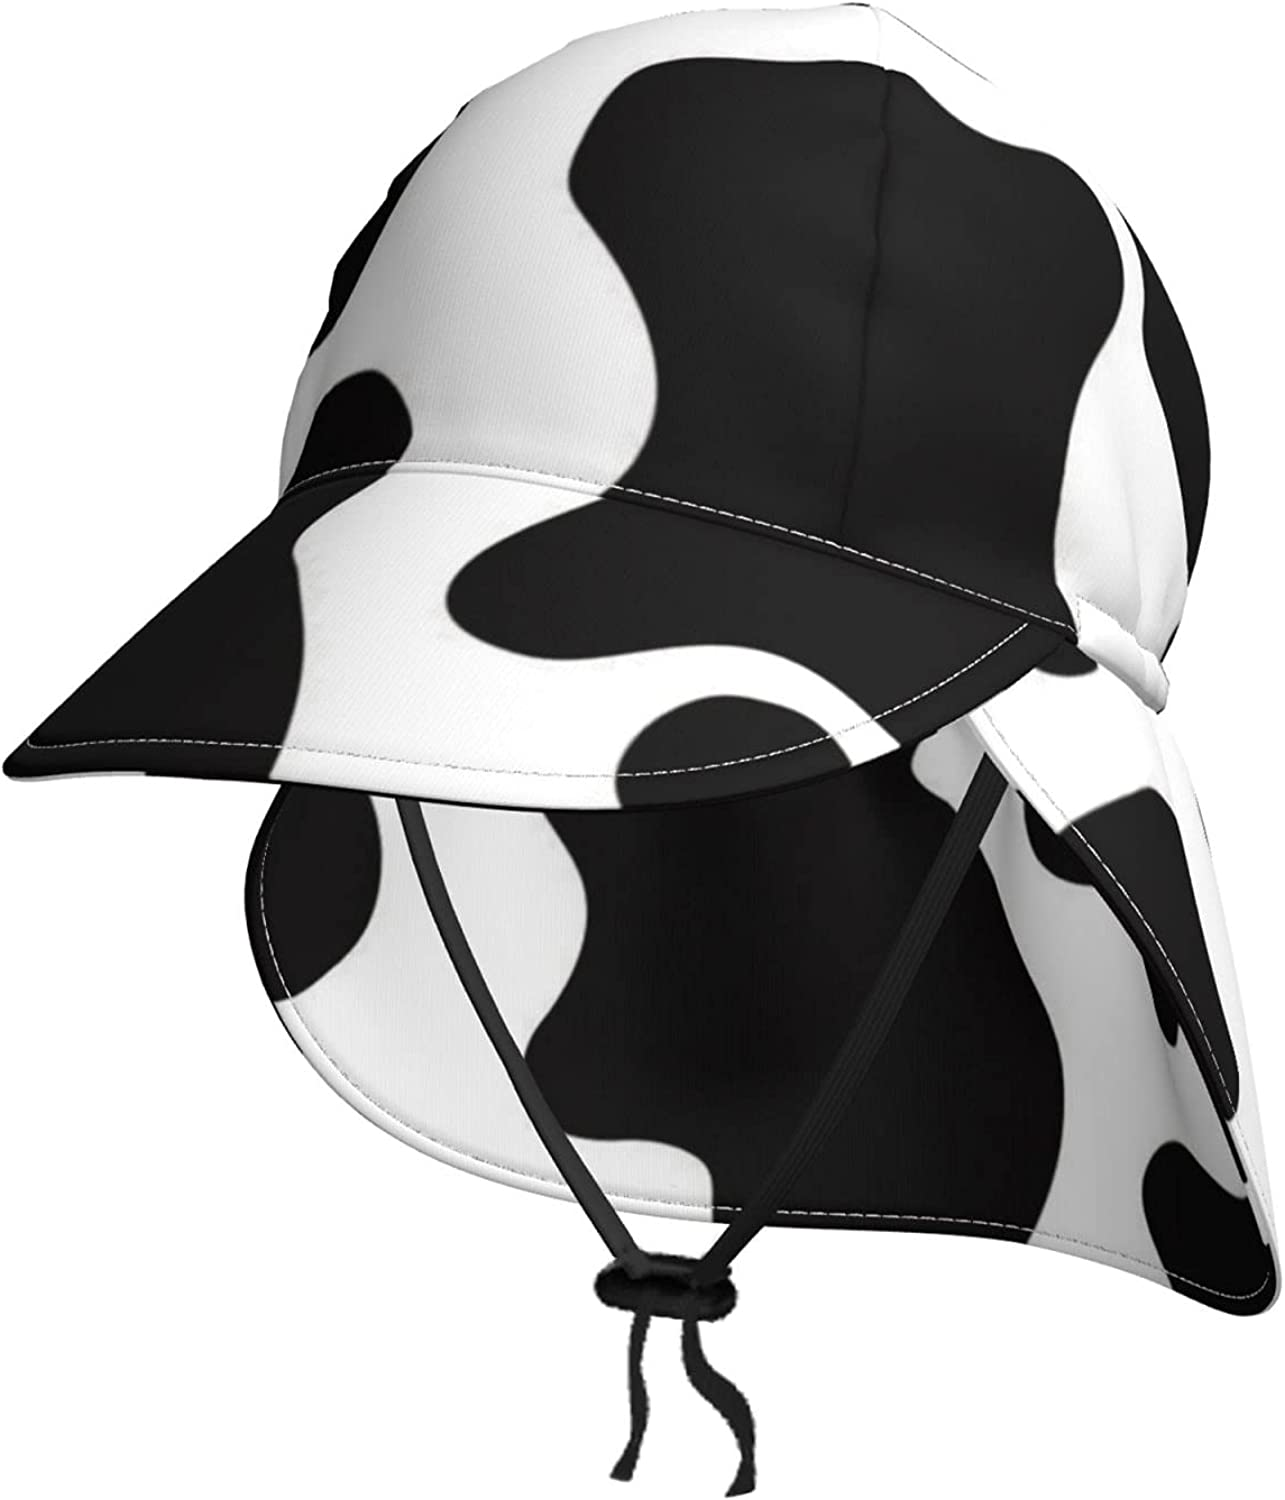 Black Max 80% OFF and White Cow Kids Sun Hat Flap Neck store Summer B with